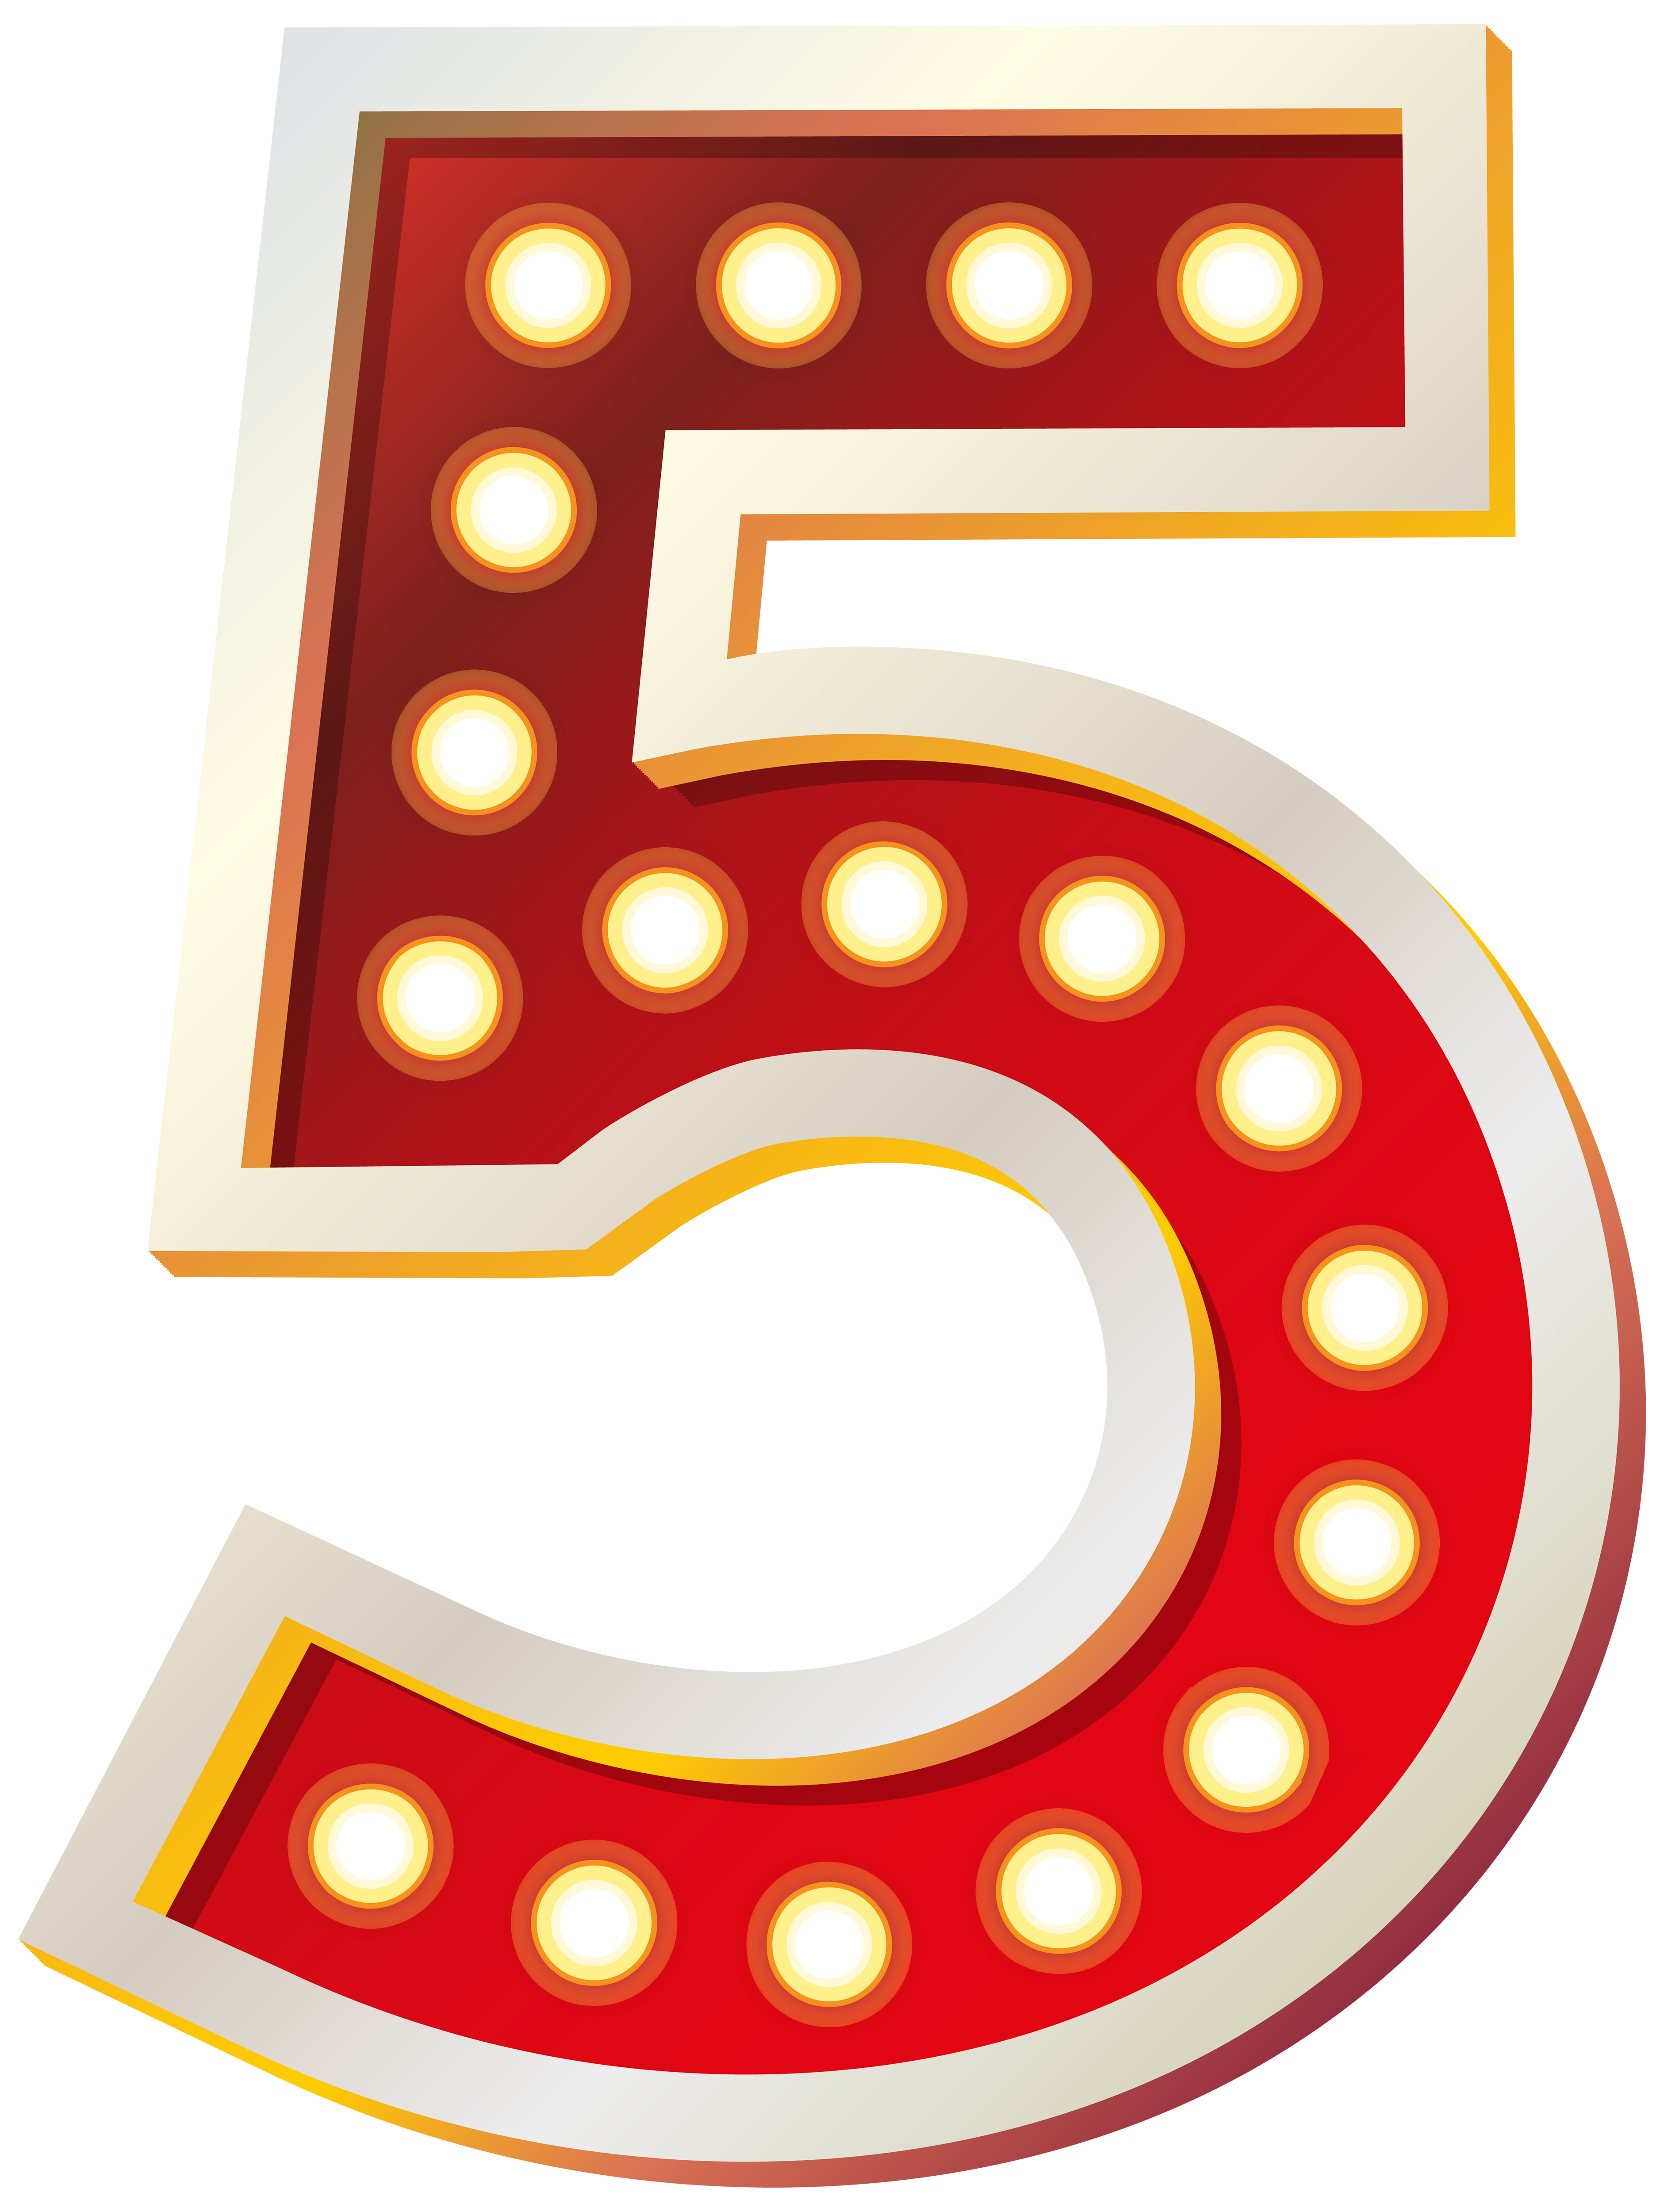 3762x5000 Red Number Five With Lights Png Clip Art Imageu200b Gallery